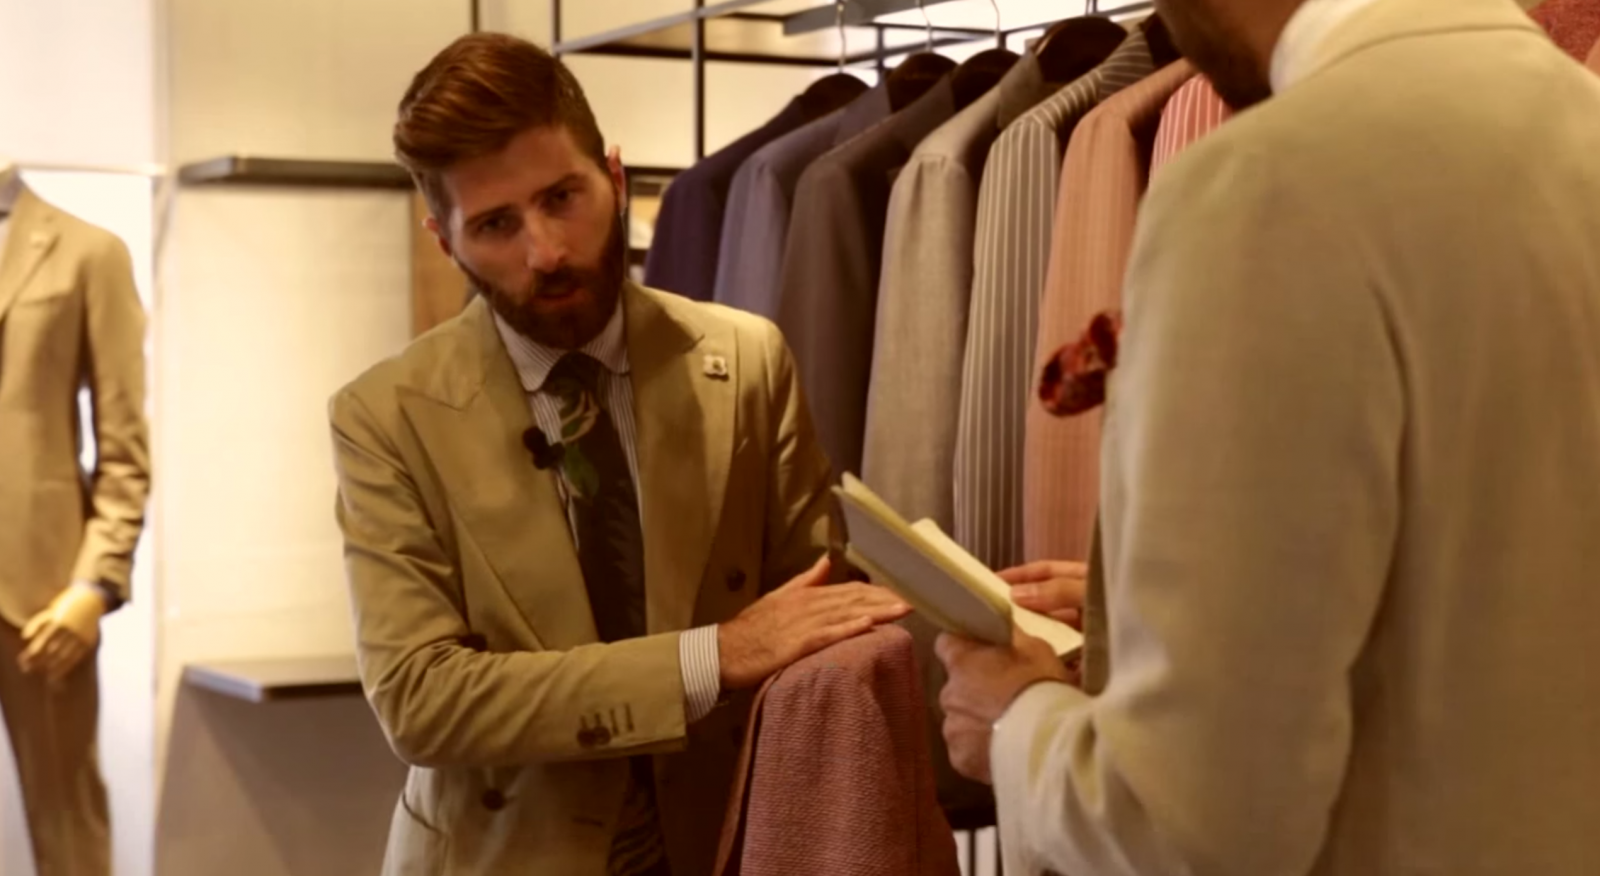 Video Interview to Alessio Lardini World-renowned jackets and more